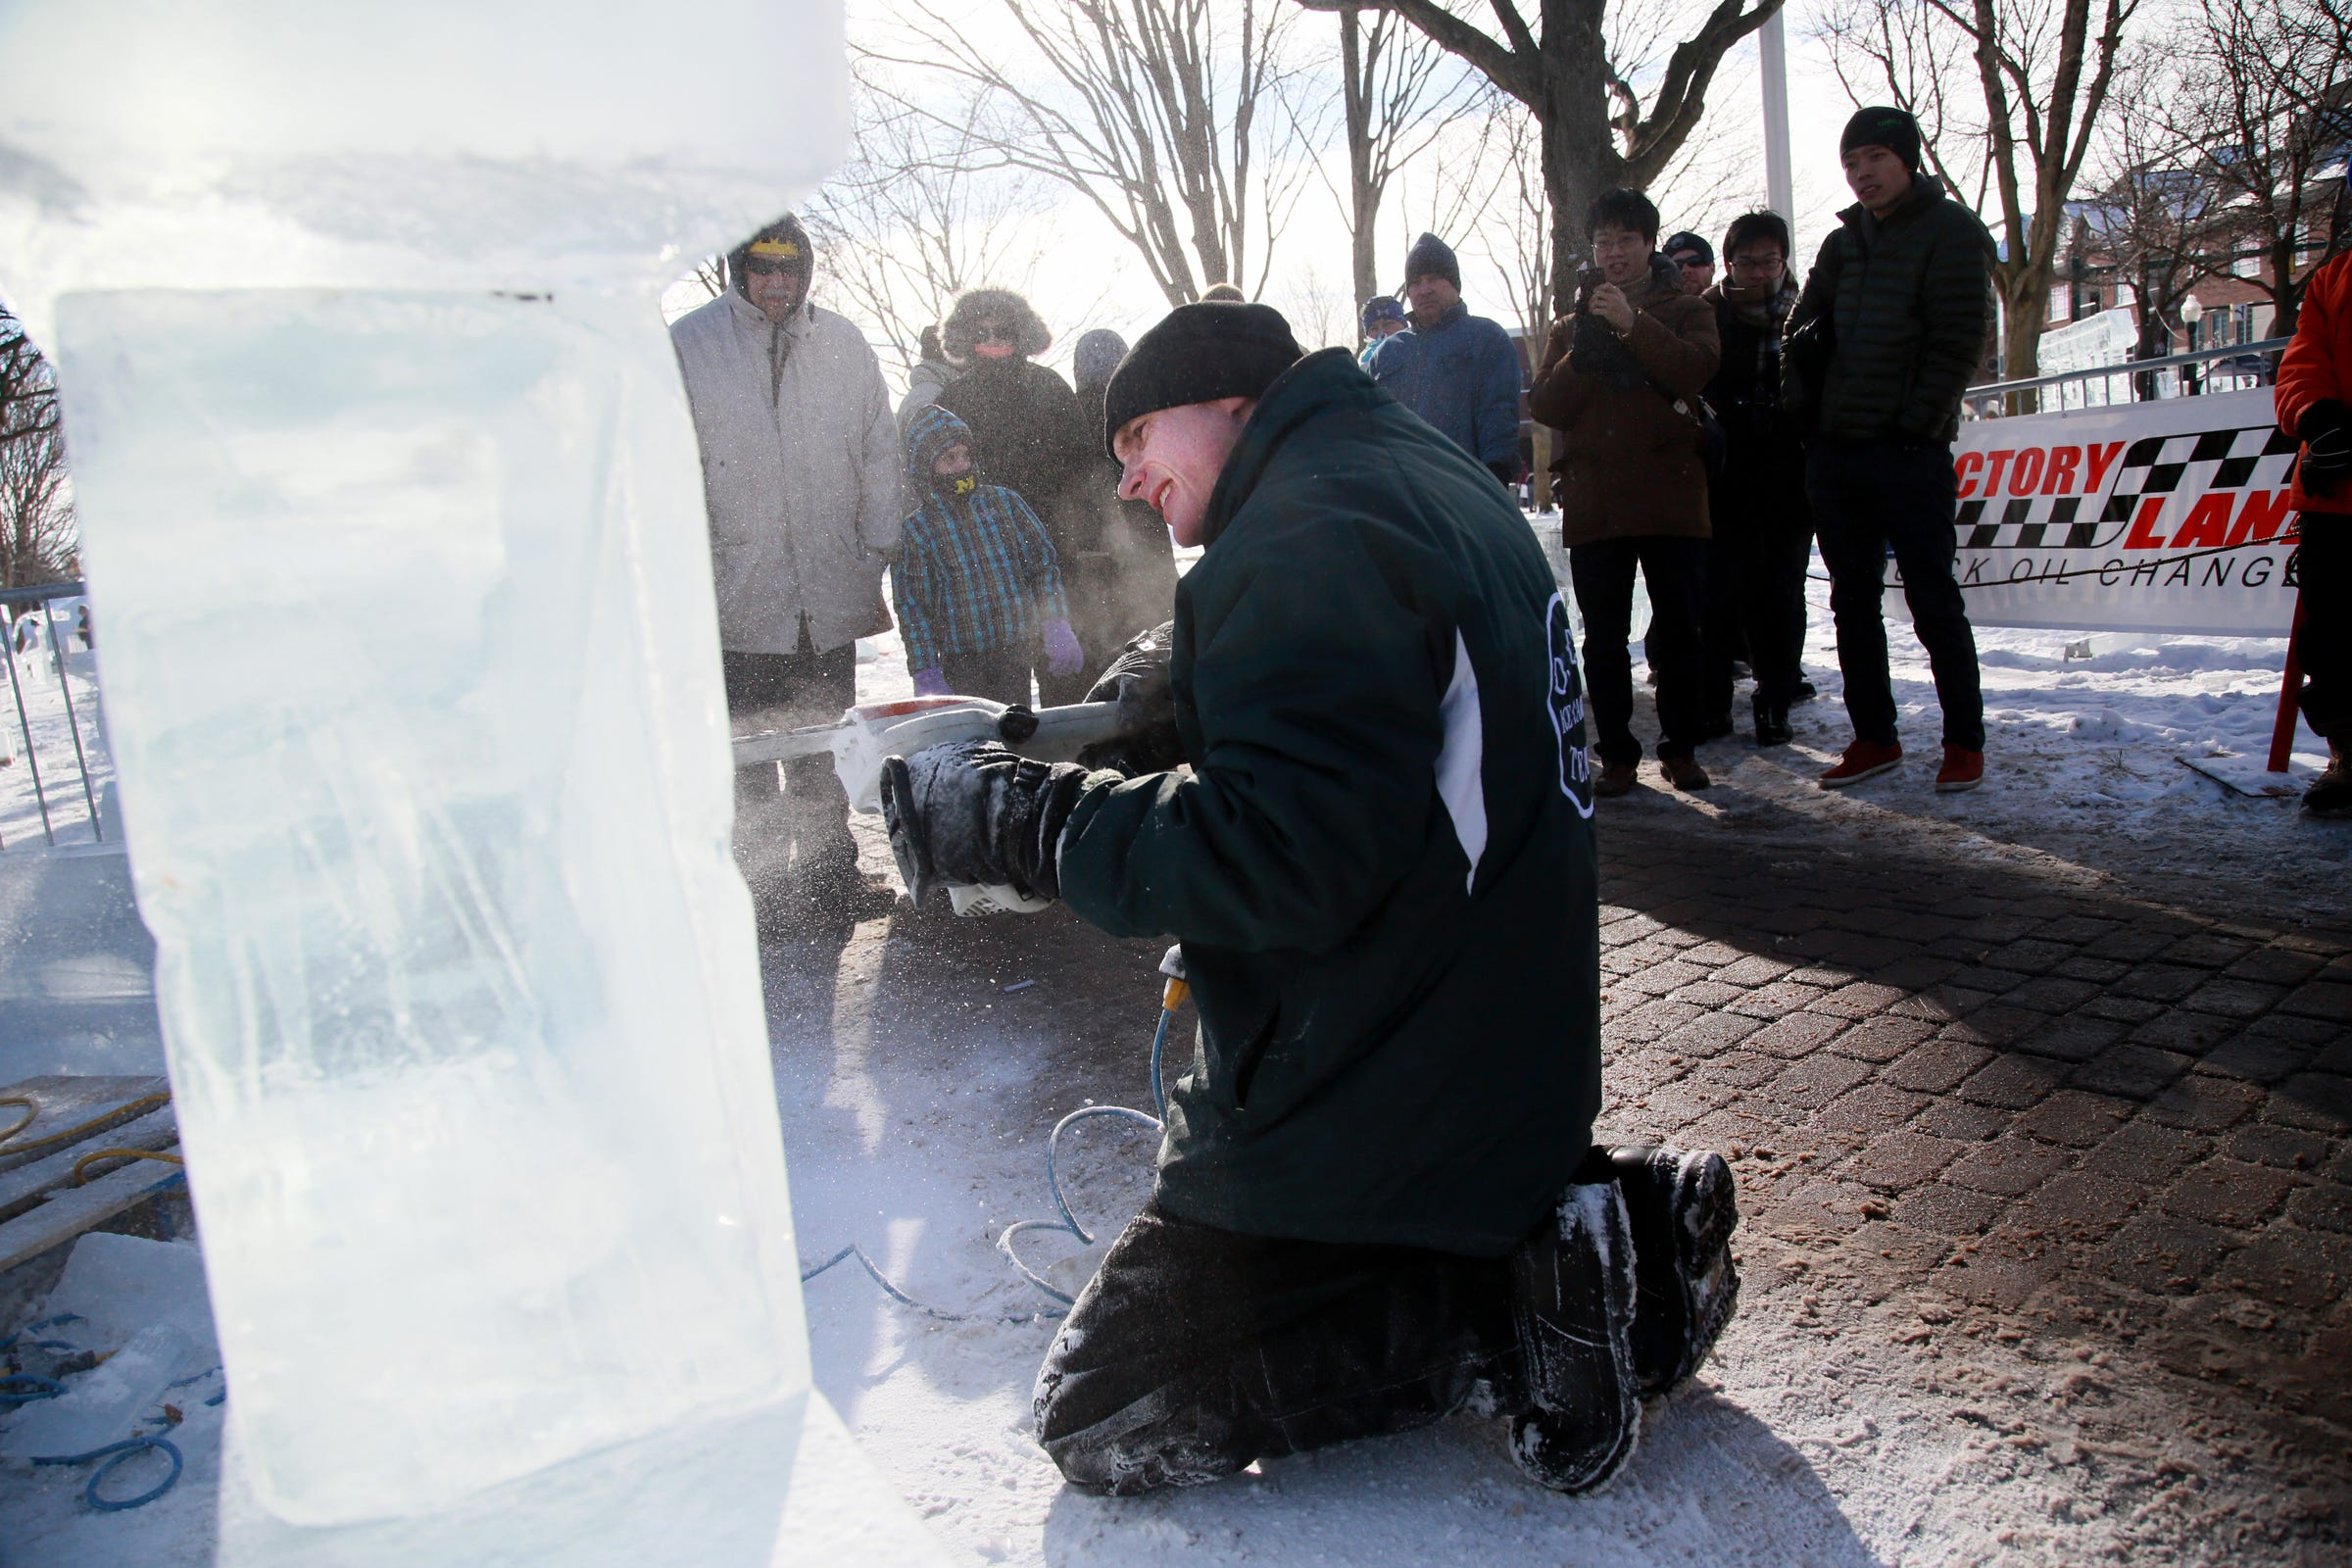 Ice carvers will be demonstrating their technique during this weekend's Plymouth Ice Festival.